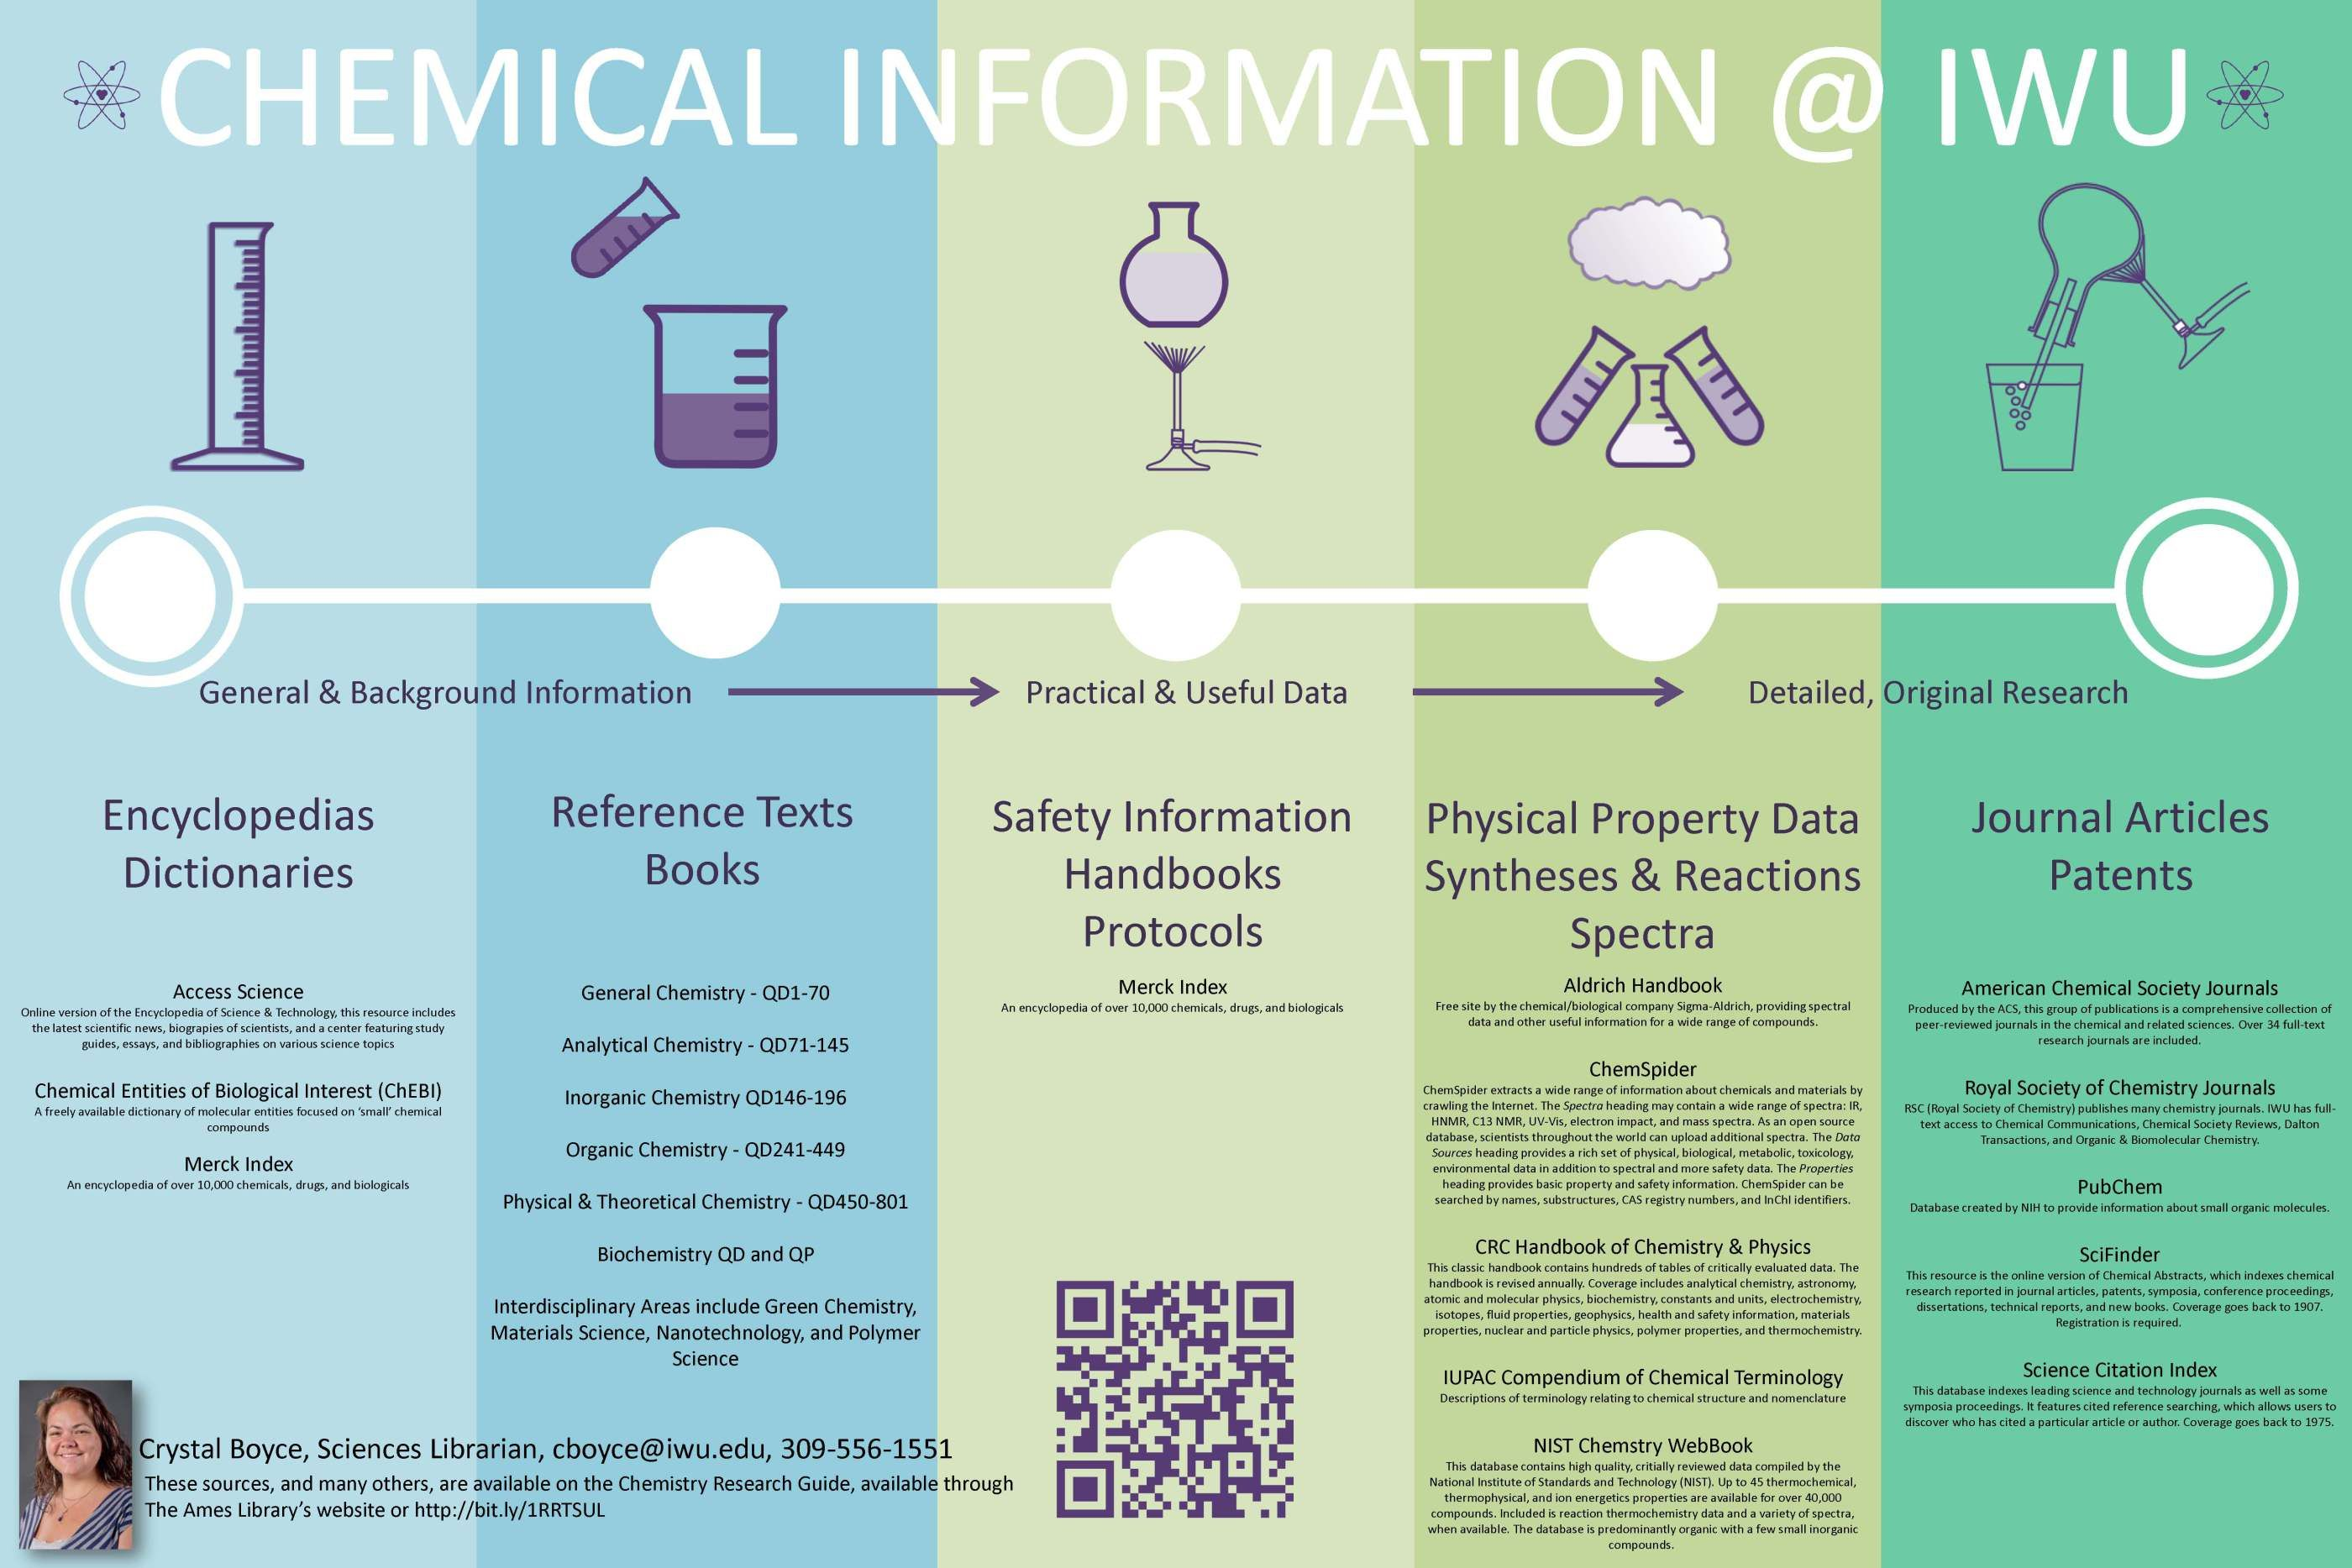 Chemical Information @ IWU Poster | Poster Presentations